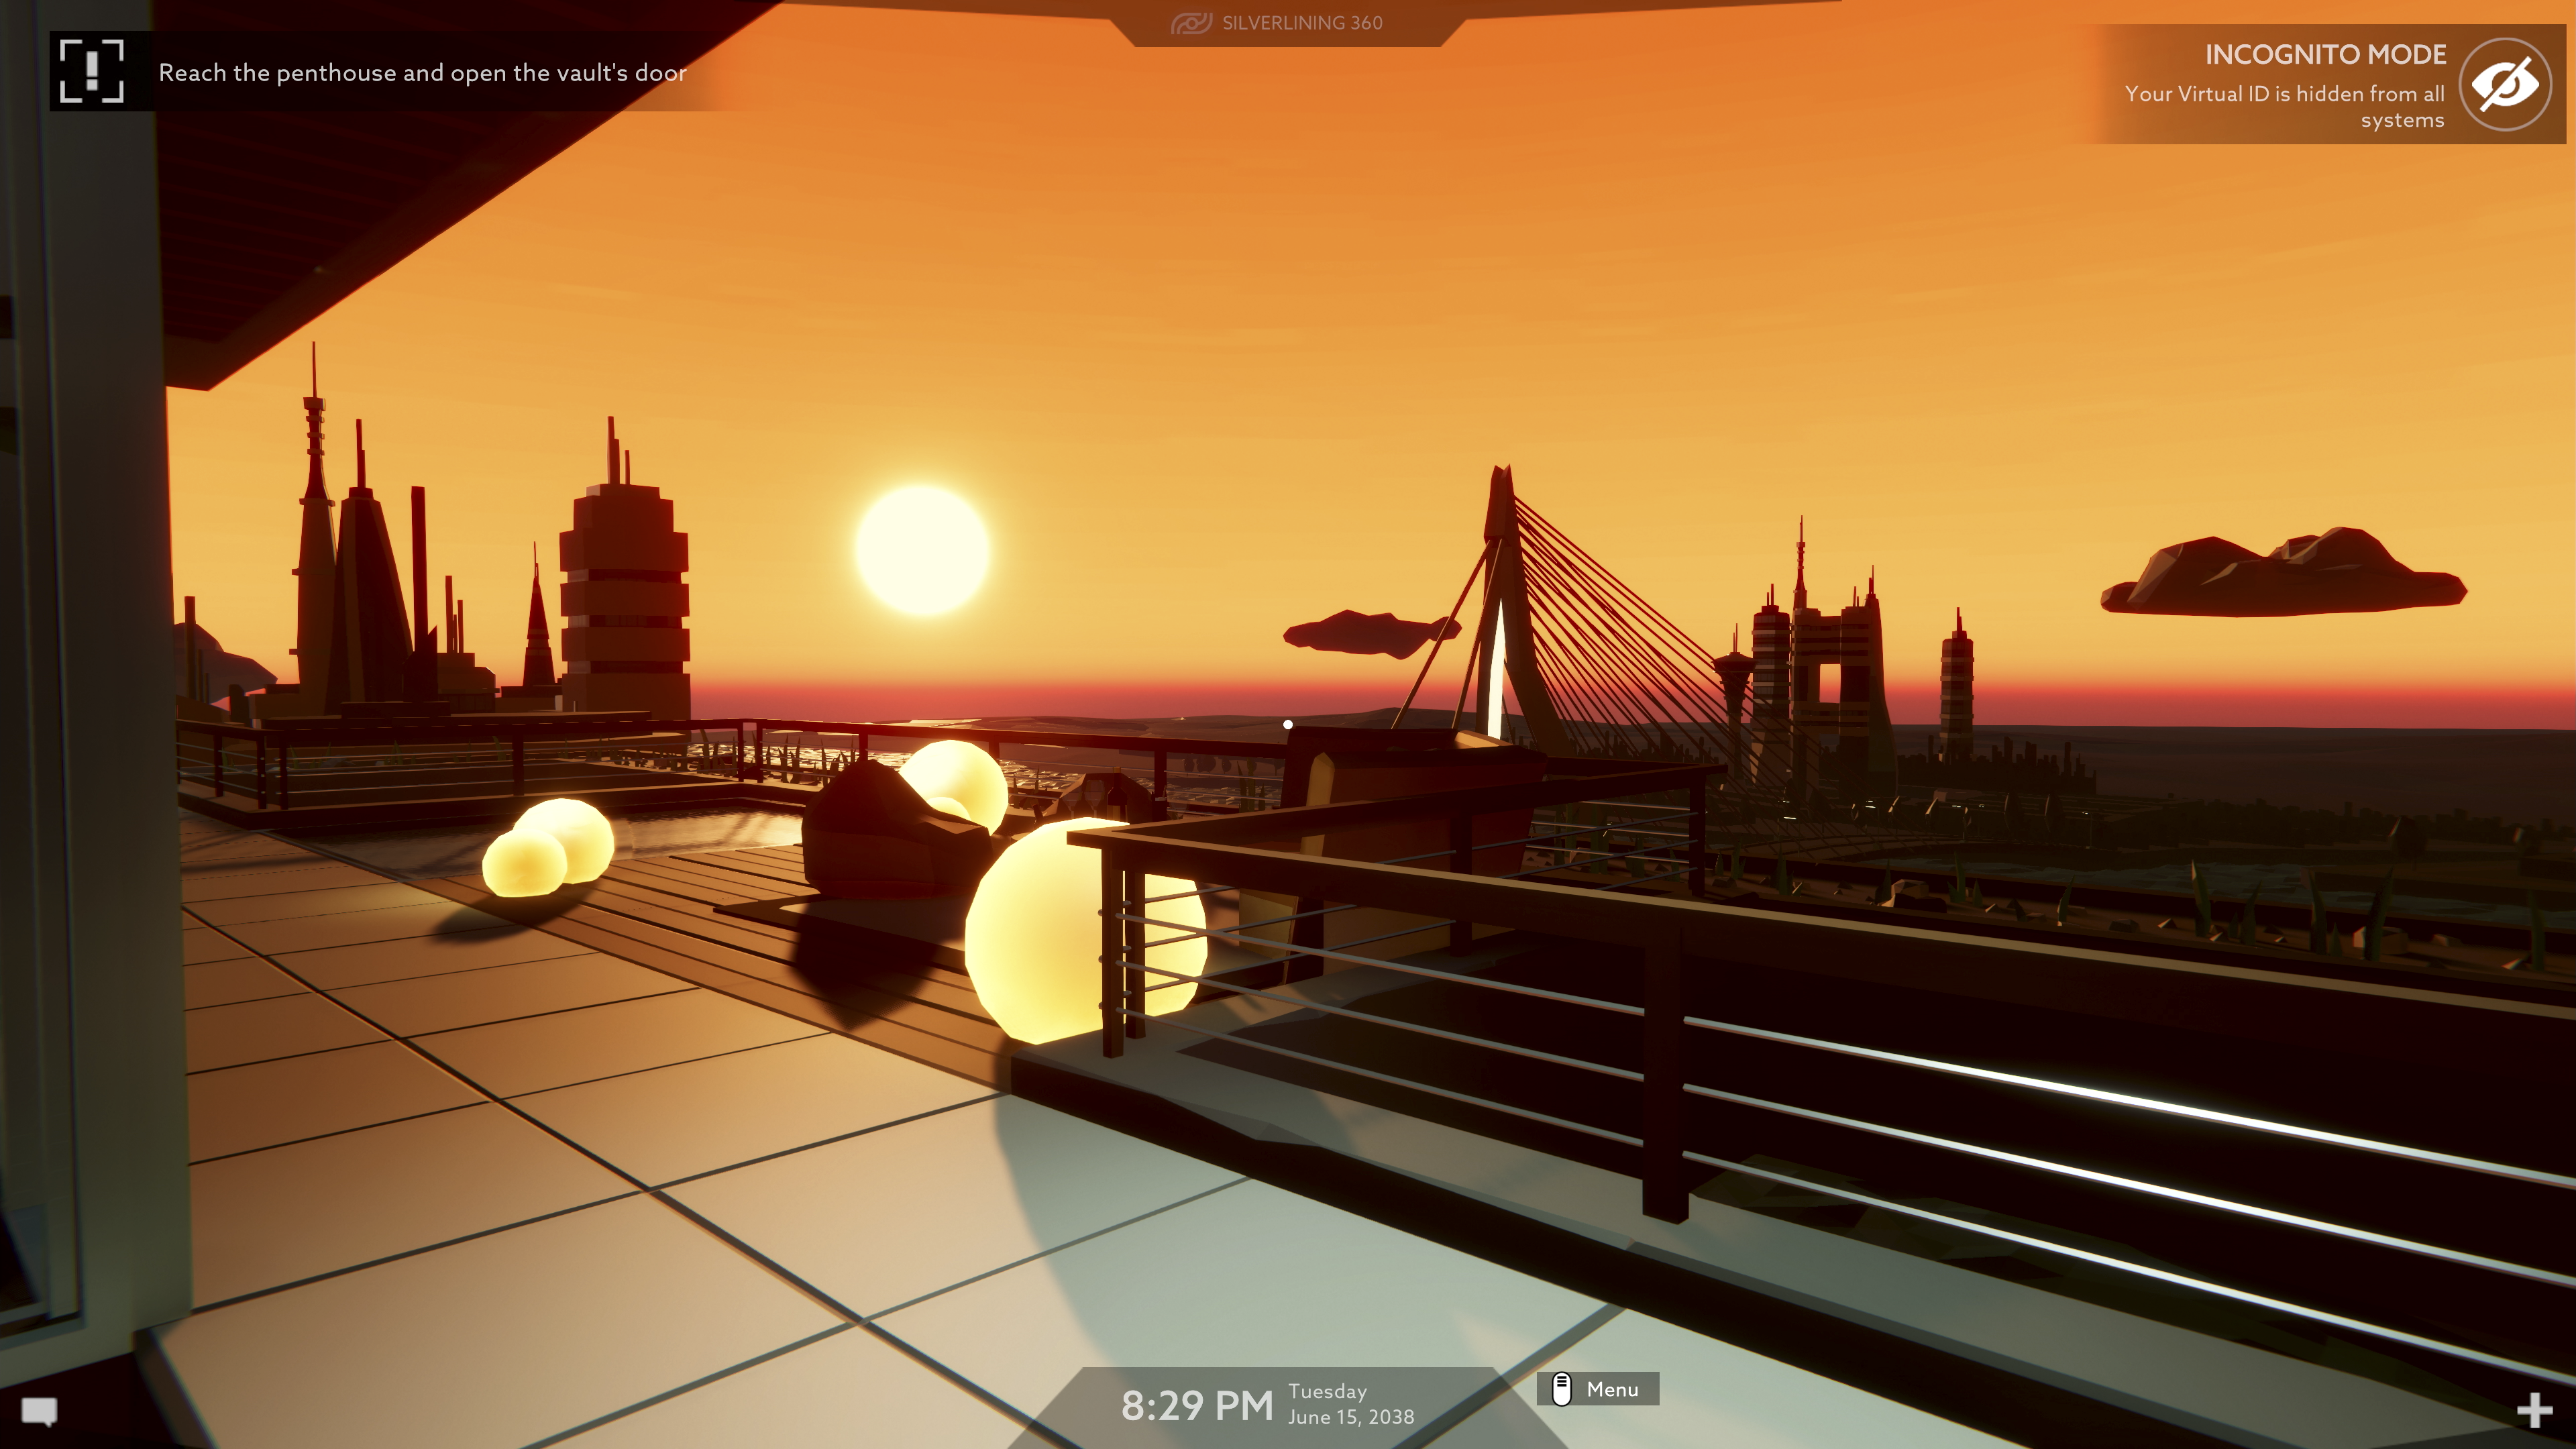 Operation Tango screenshot - Orange sunset over a cityscape